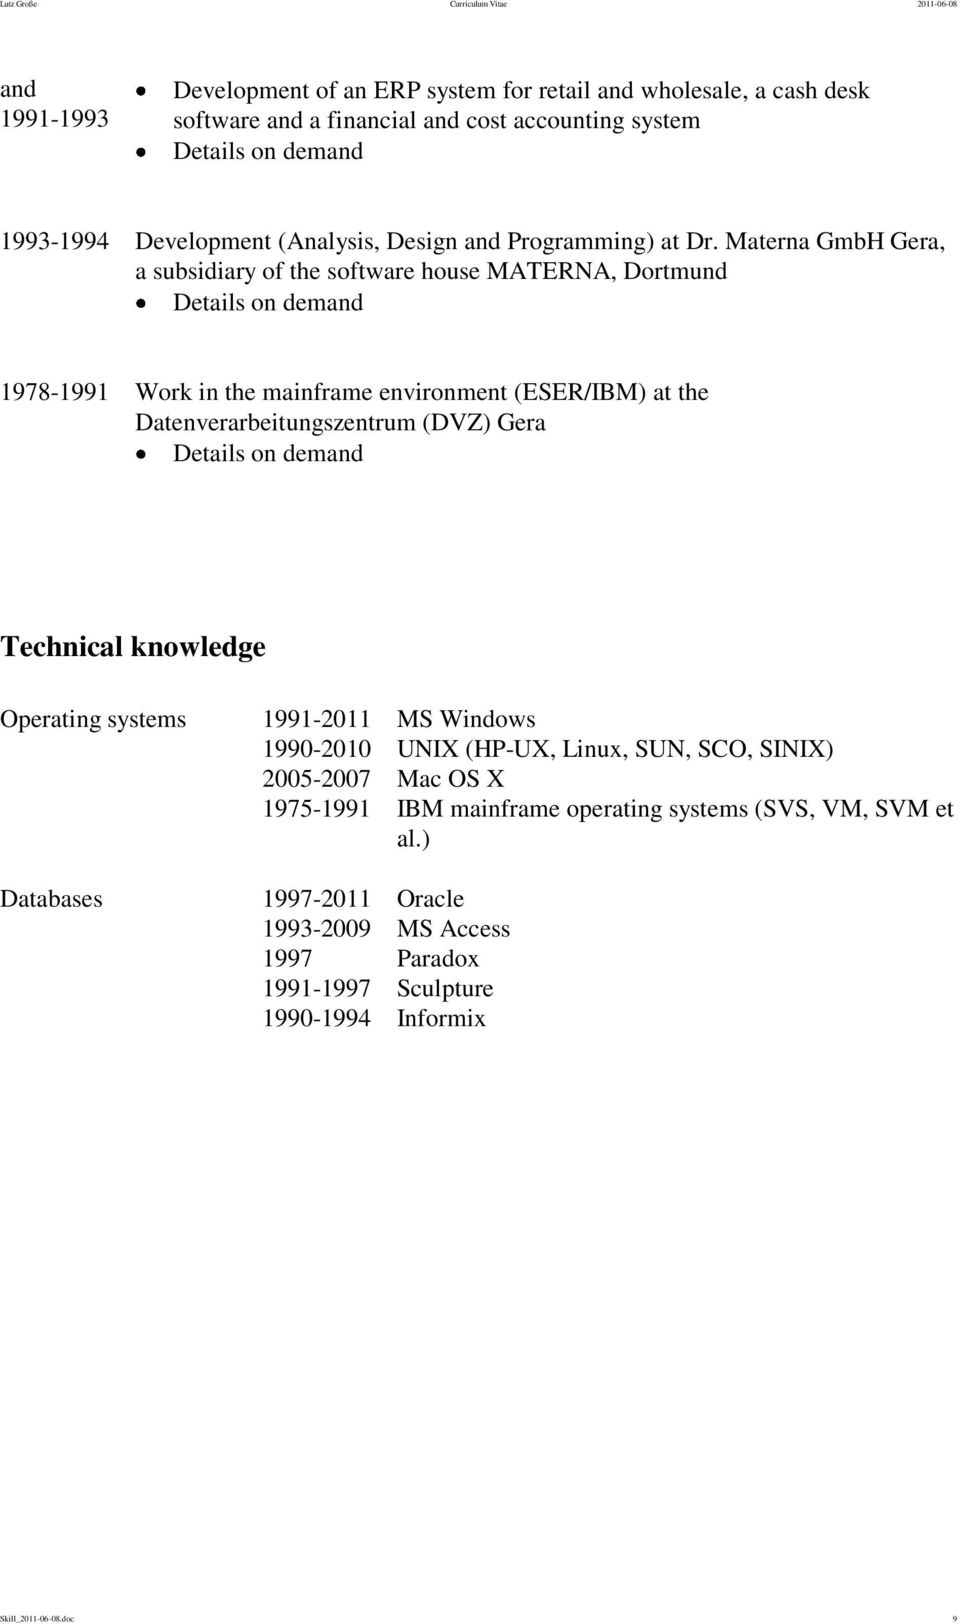 Materna GmbH Gera, a subsidiary of the software house MATERNA, Dortmund Details on demand 1978-1991 Work in the mainframe environment (ESER/IBM) at the Datenverarbeitungszentrum